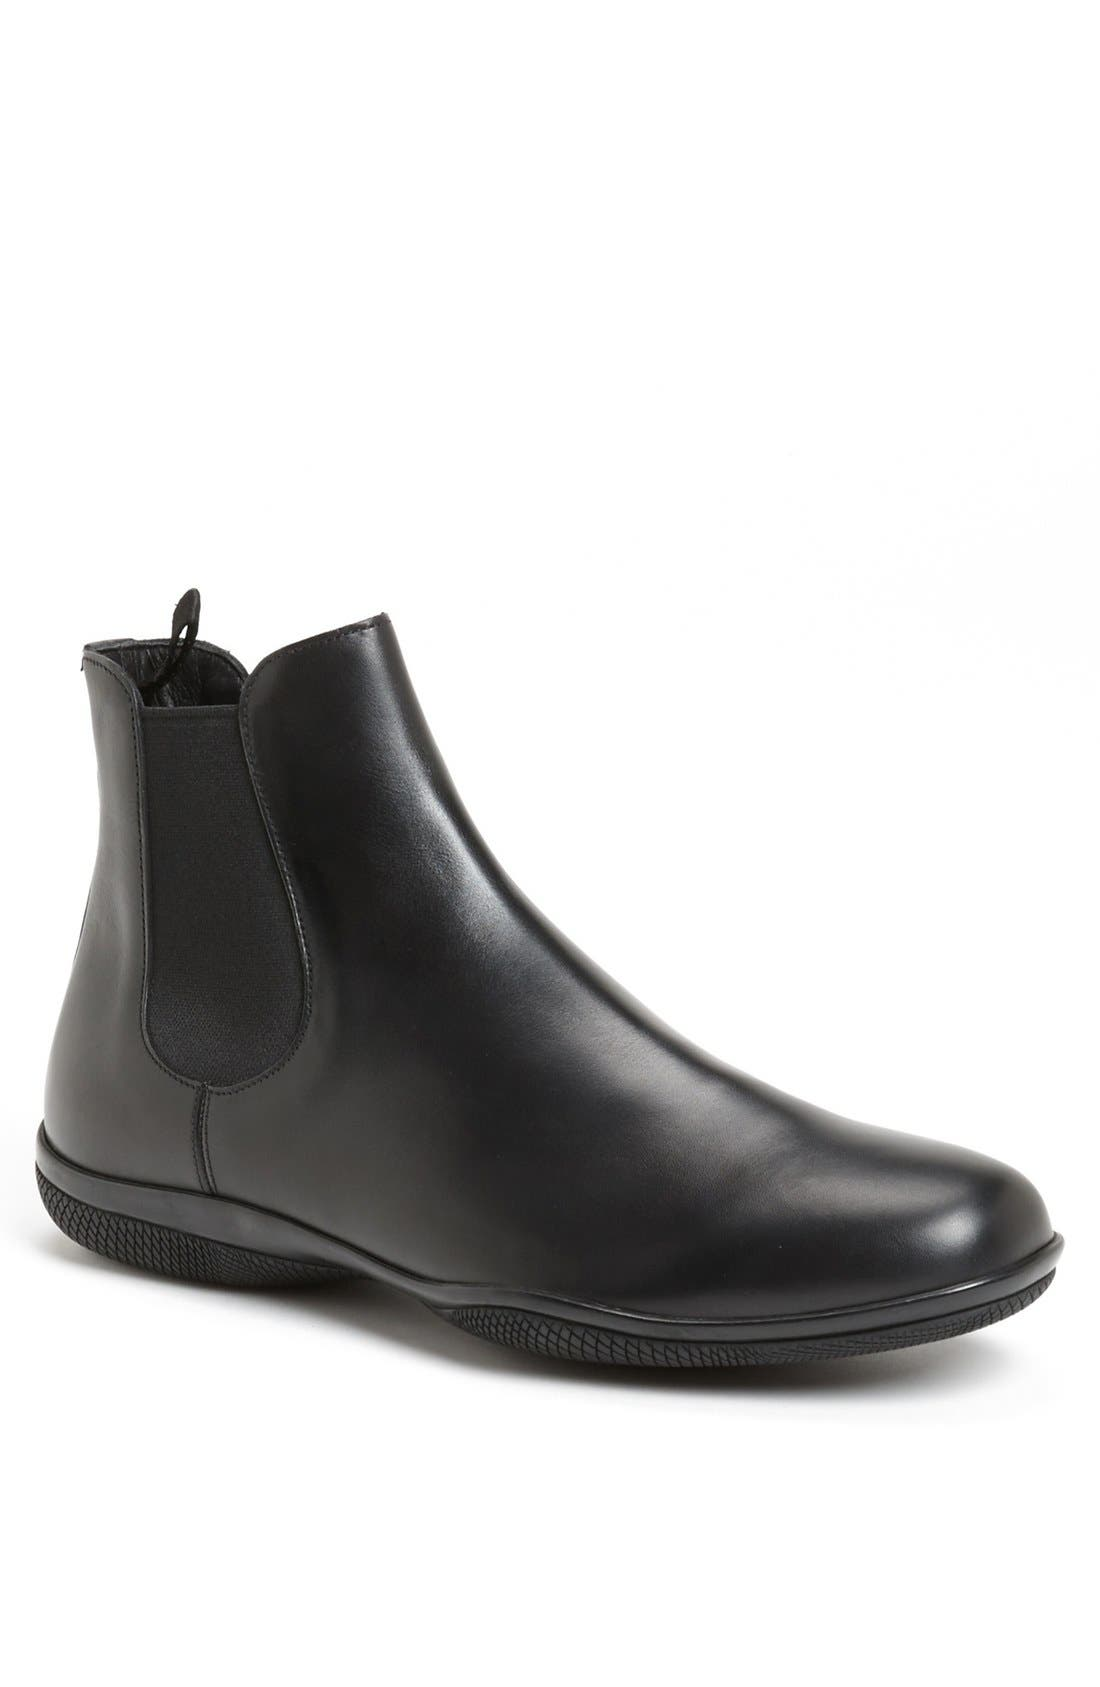 'New Toblak' Chelsea Boot,                             Main thumbnail 1, color,                             Black